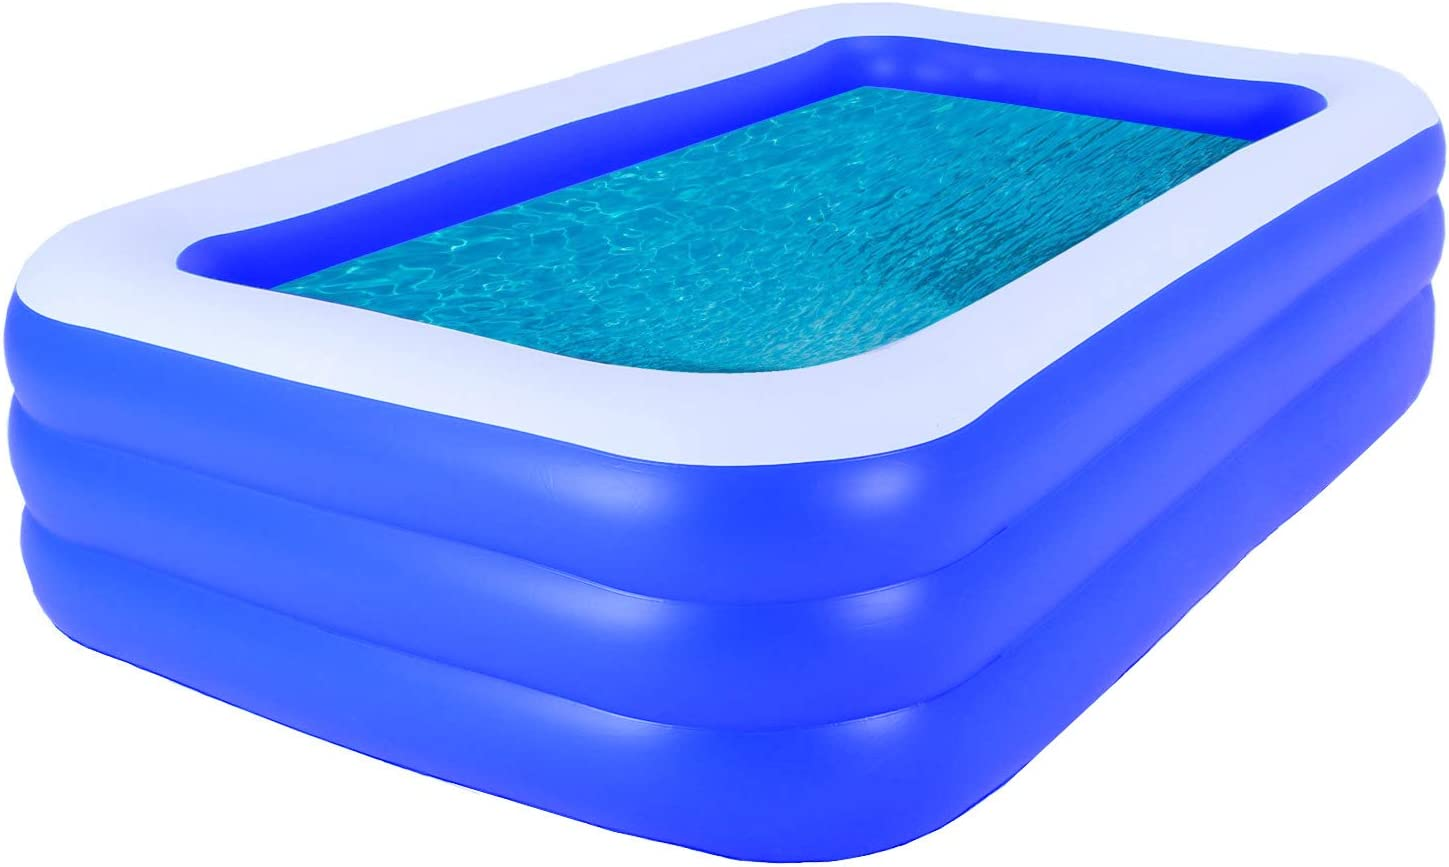 Family Inflatable Swimming Pool, 102''x69''x24'' Full-Sized Inflatable Lounge Pool for Kids, Adults, Toddlers for Ages 3+, Blow Up Kiddie Pools for Family, Outdoor, Garden, Backyard, Above Ground Pool